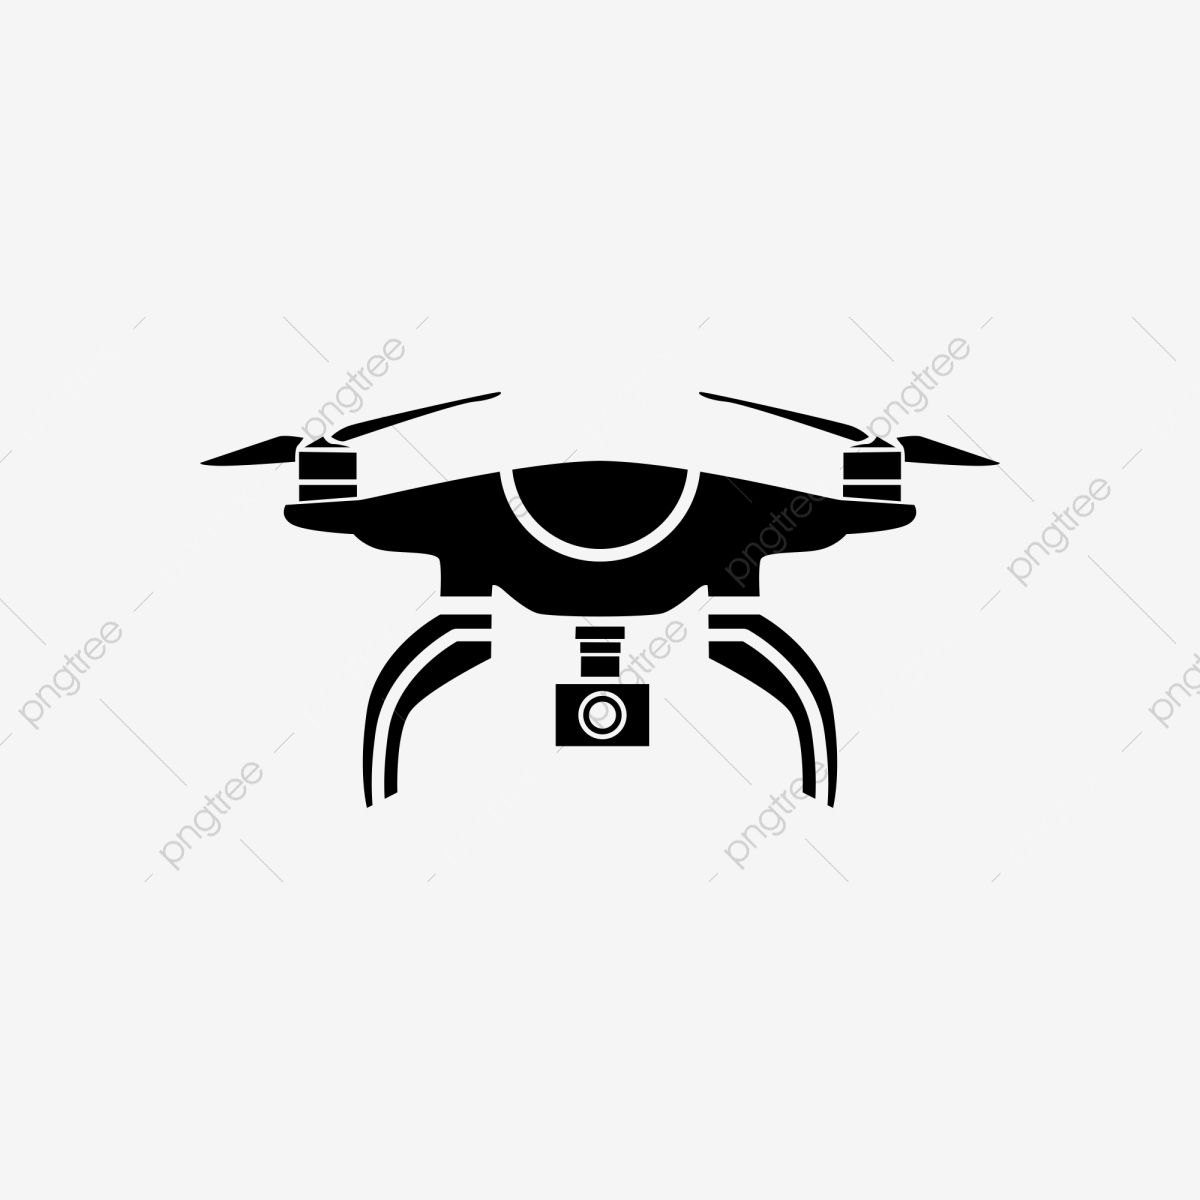 Drone Photography Logo Design Helicopter Clipart Logo Icons Drone Icons Png And Vector With Transparent Background For Free Download In 2021 Photography Logo Design Photography Logos Drone Photography